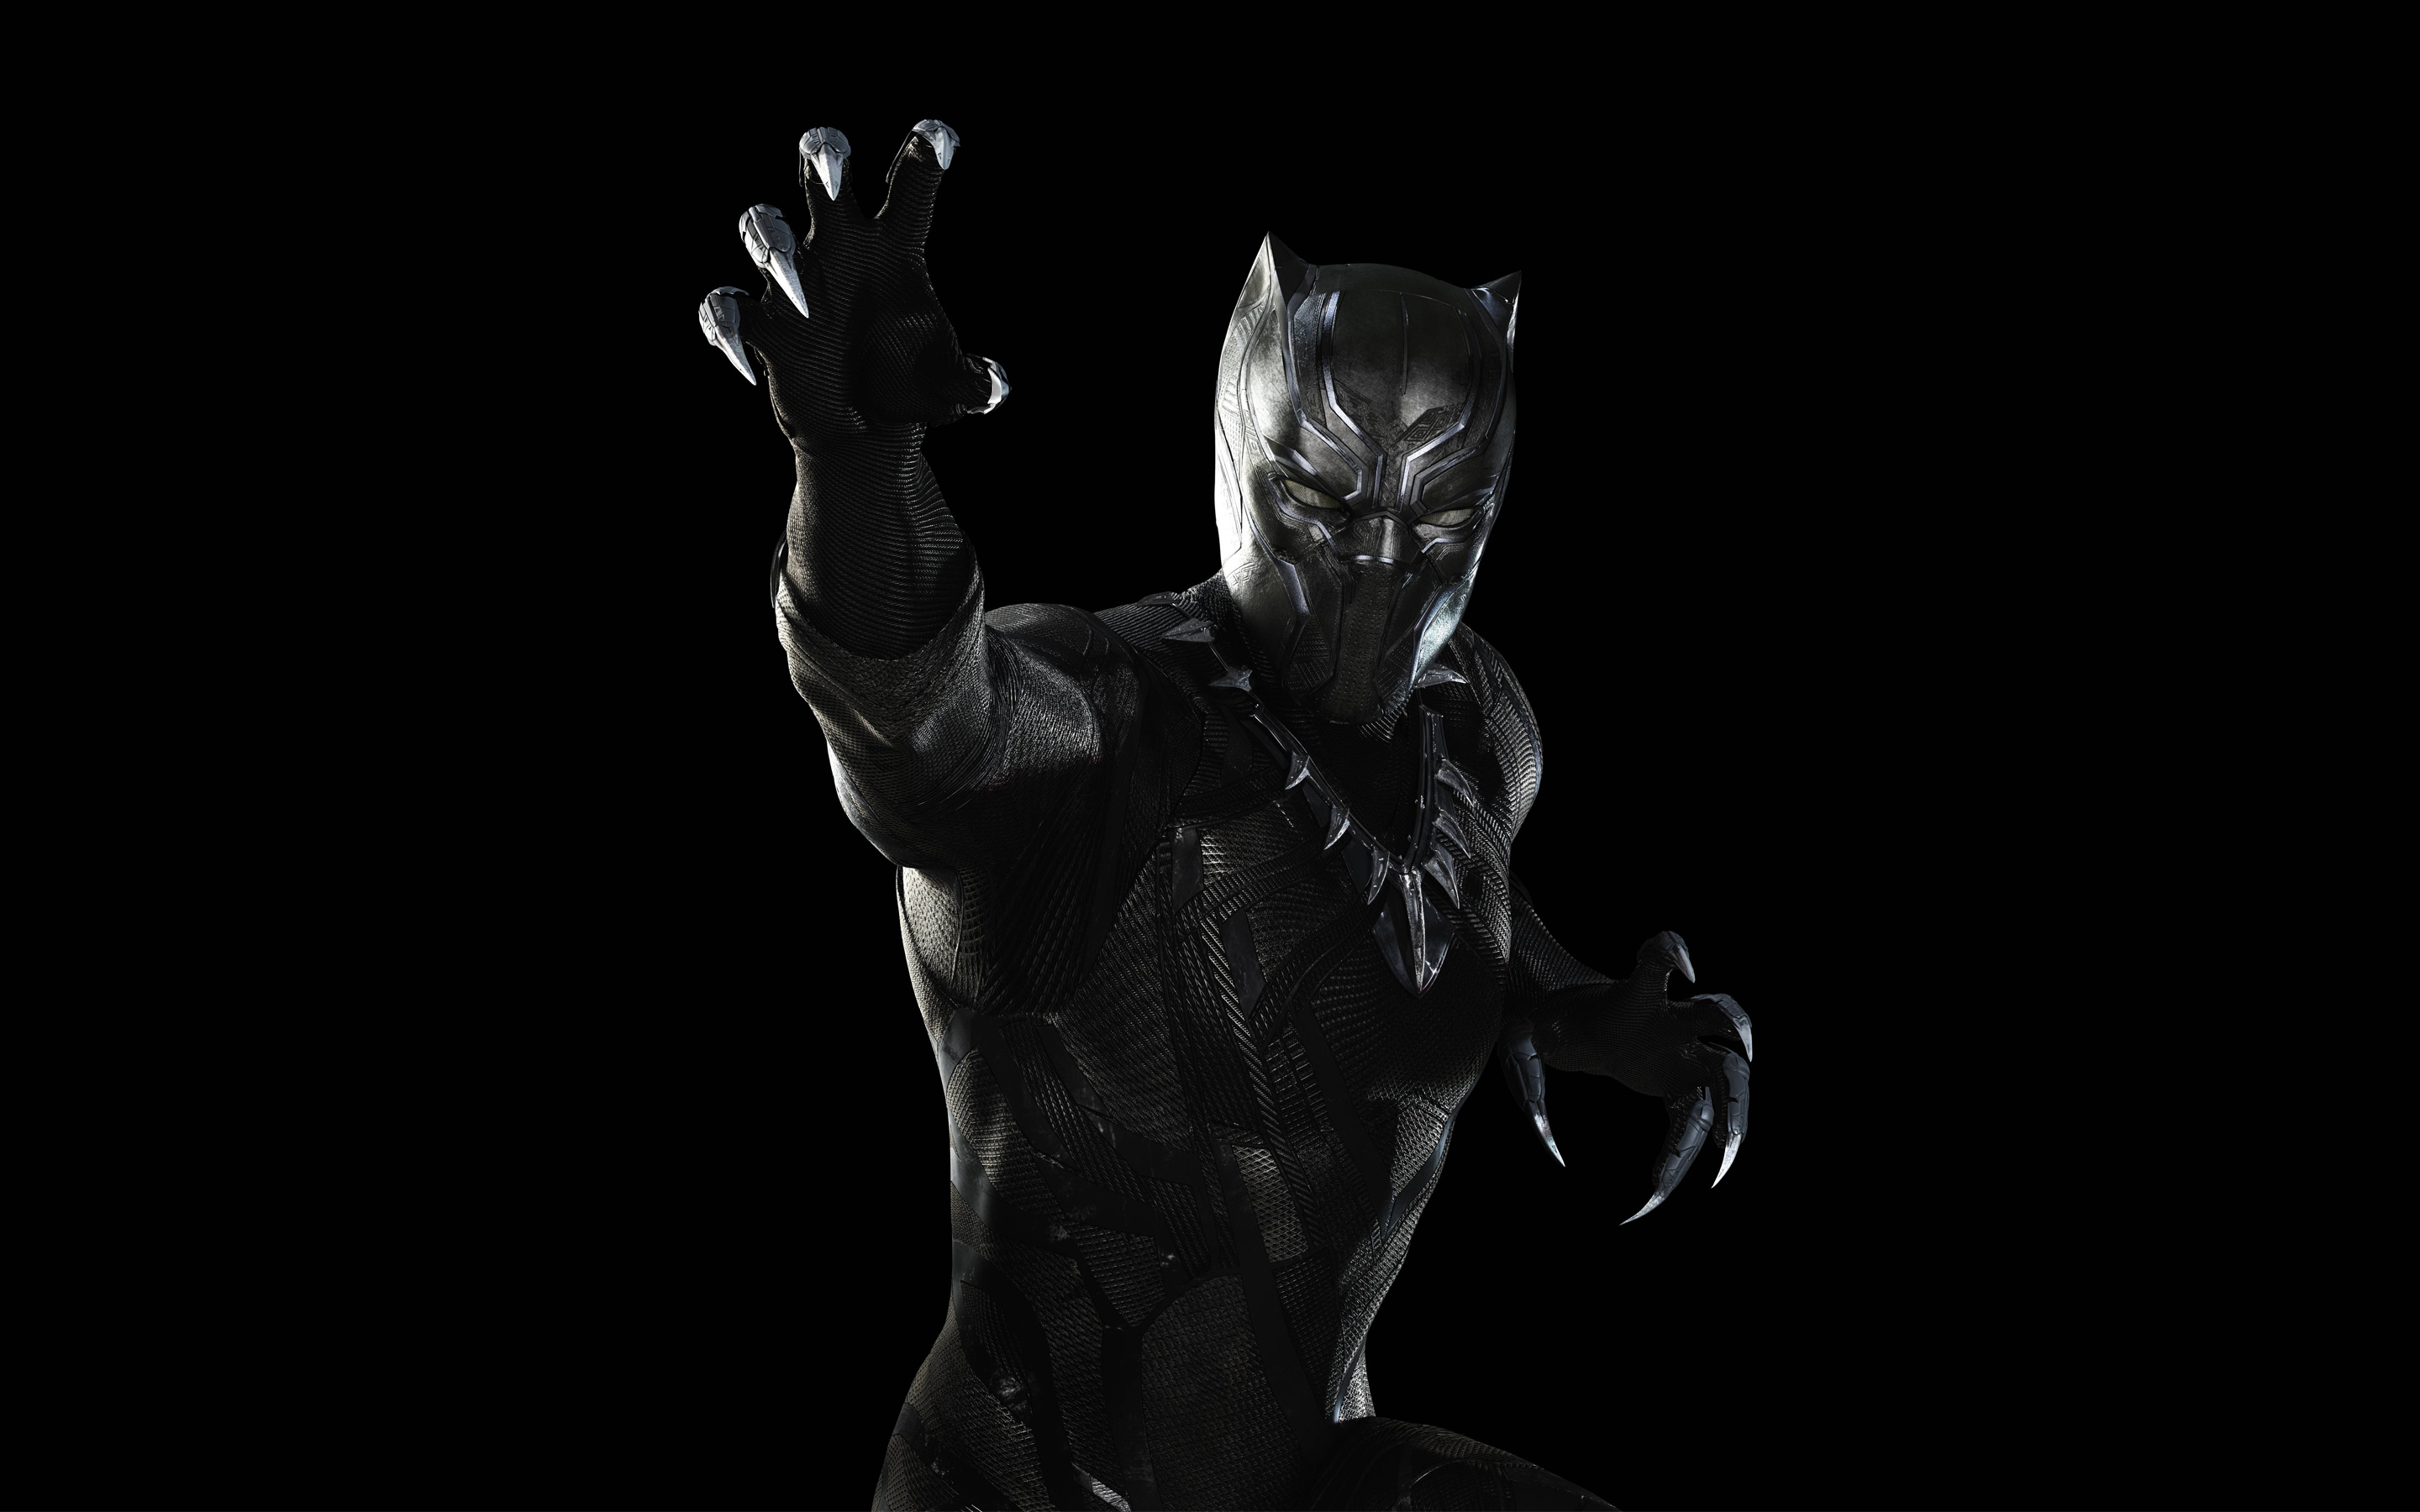 Black Panther Captain America Civil War Wallpapers | HD Wallpapers